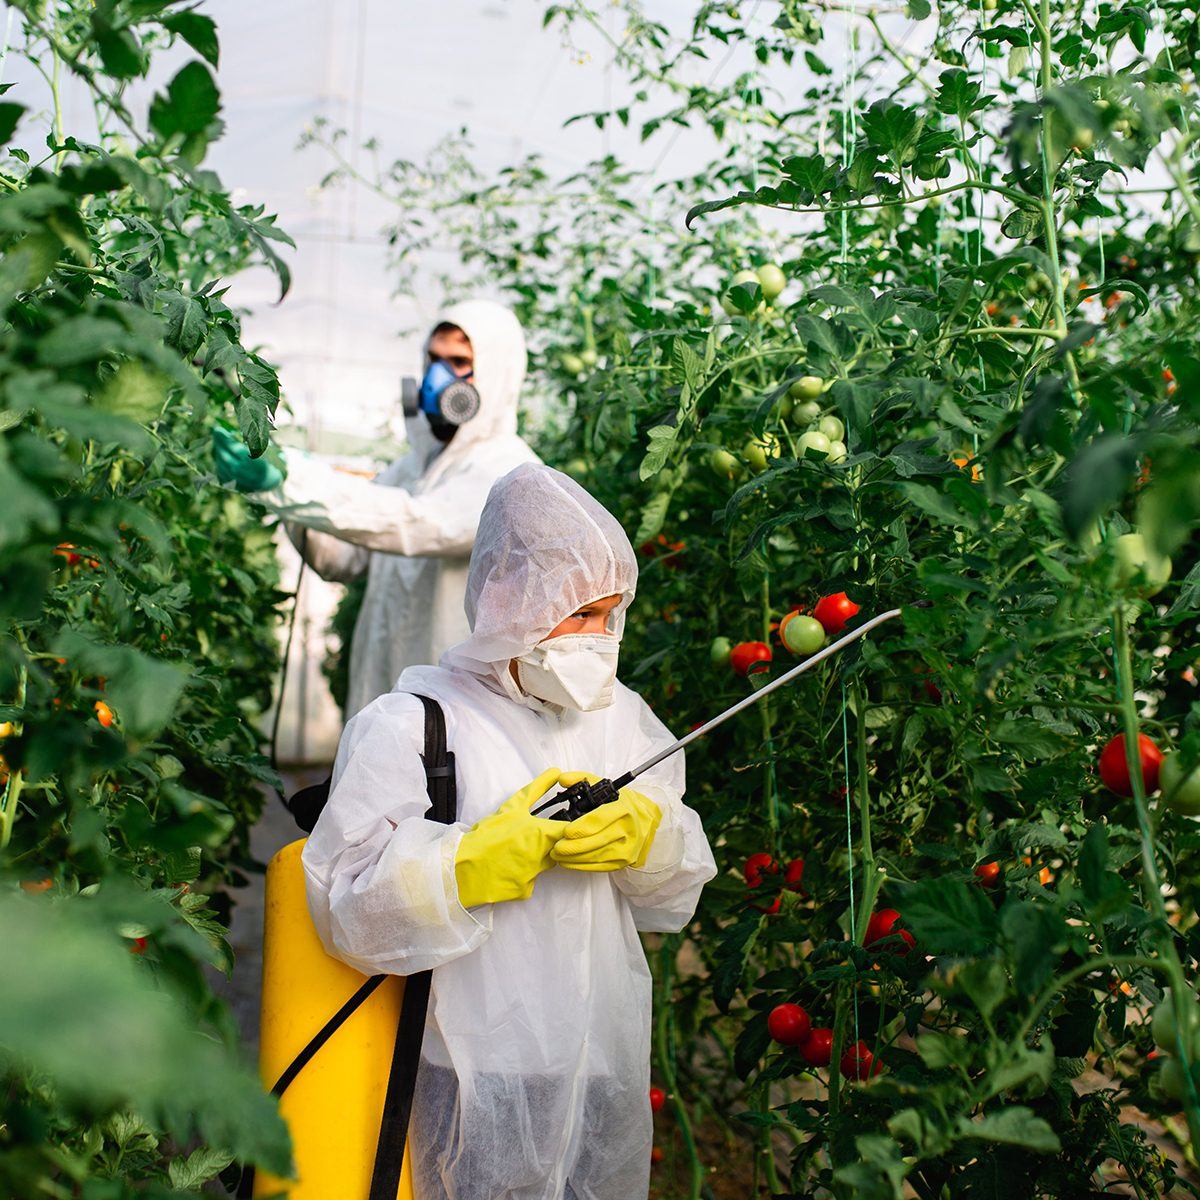 Spraying field of plants